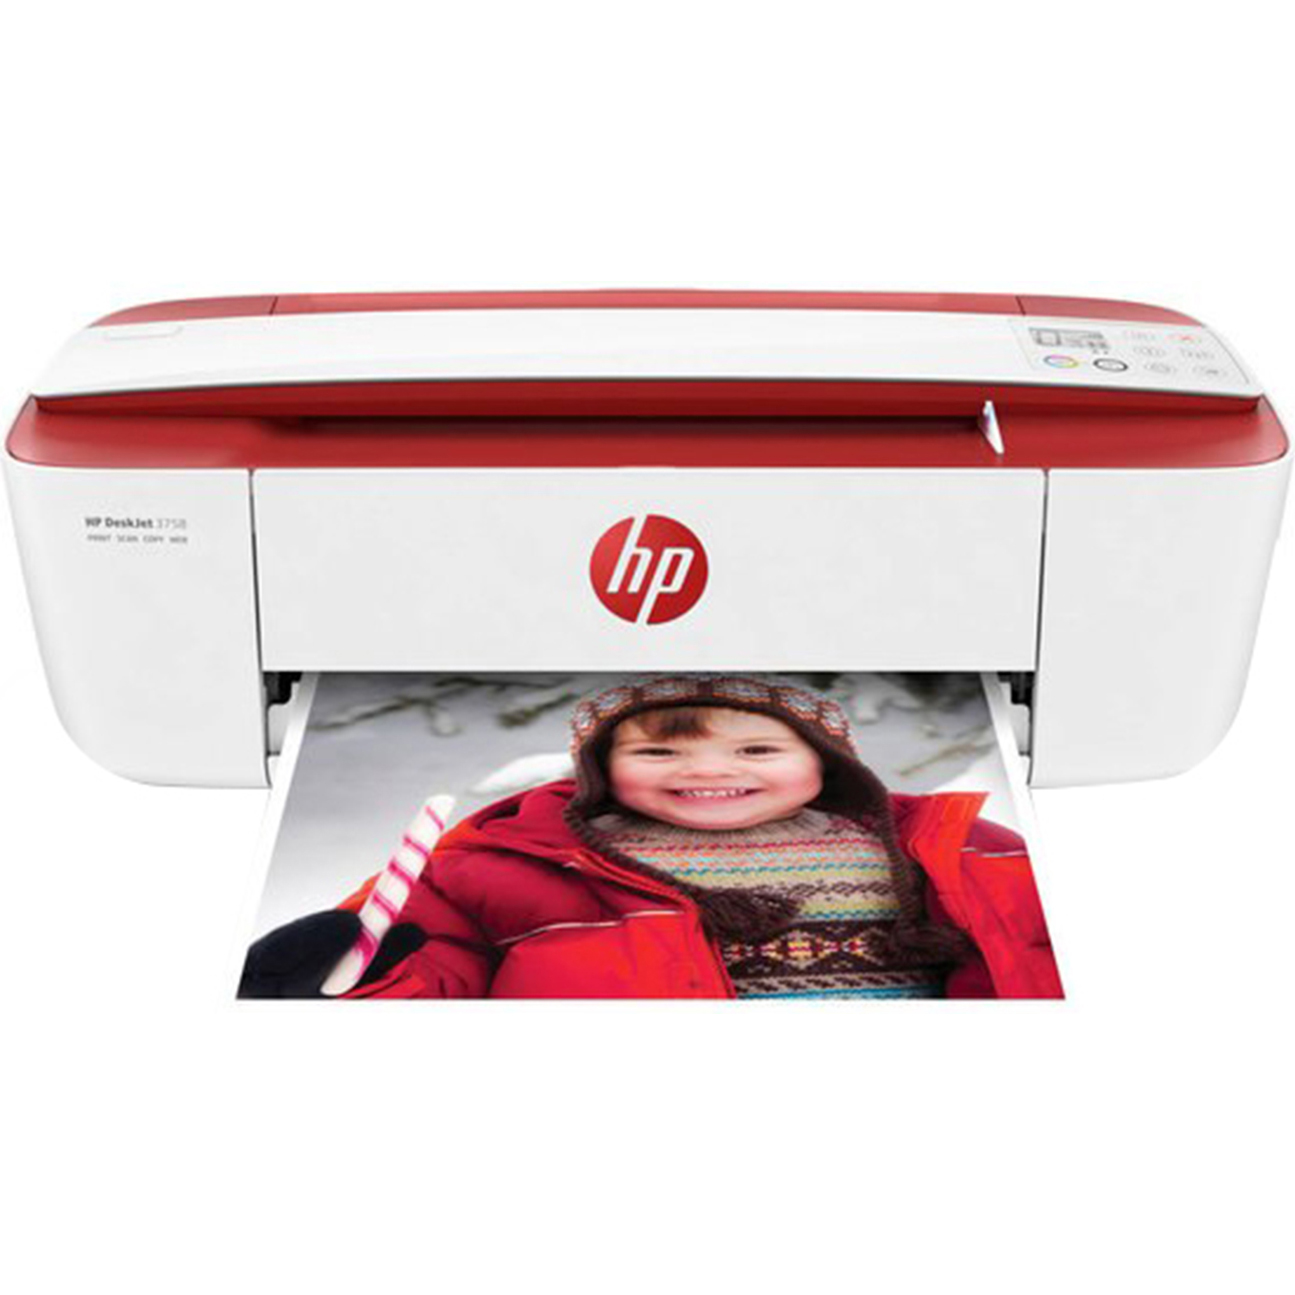 Refurbished HP 3755 All-in-One Color Ink Jet Printer, Red